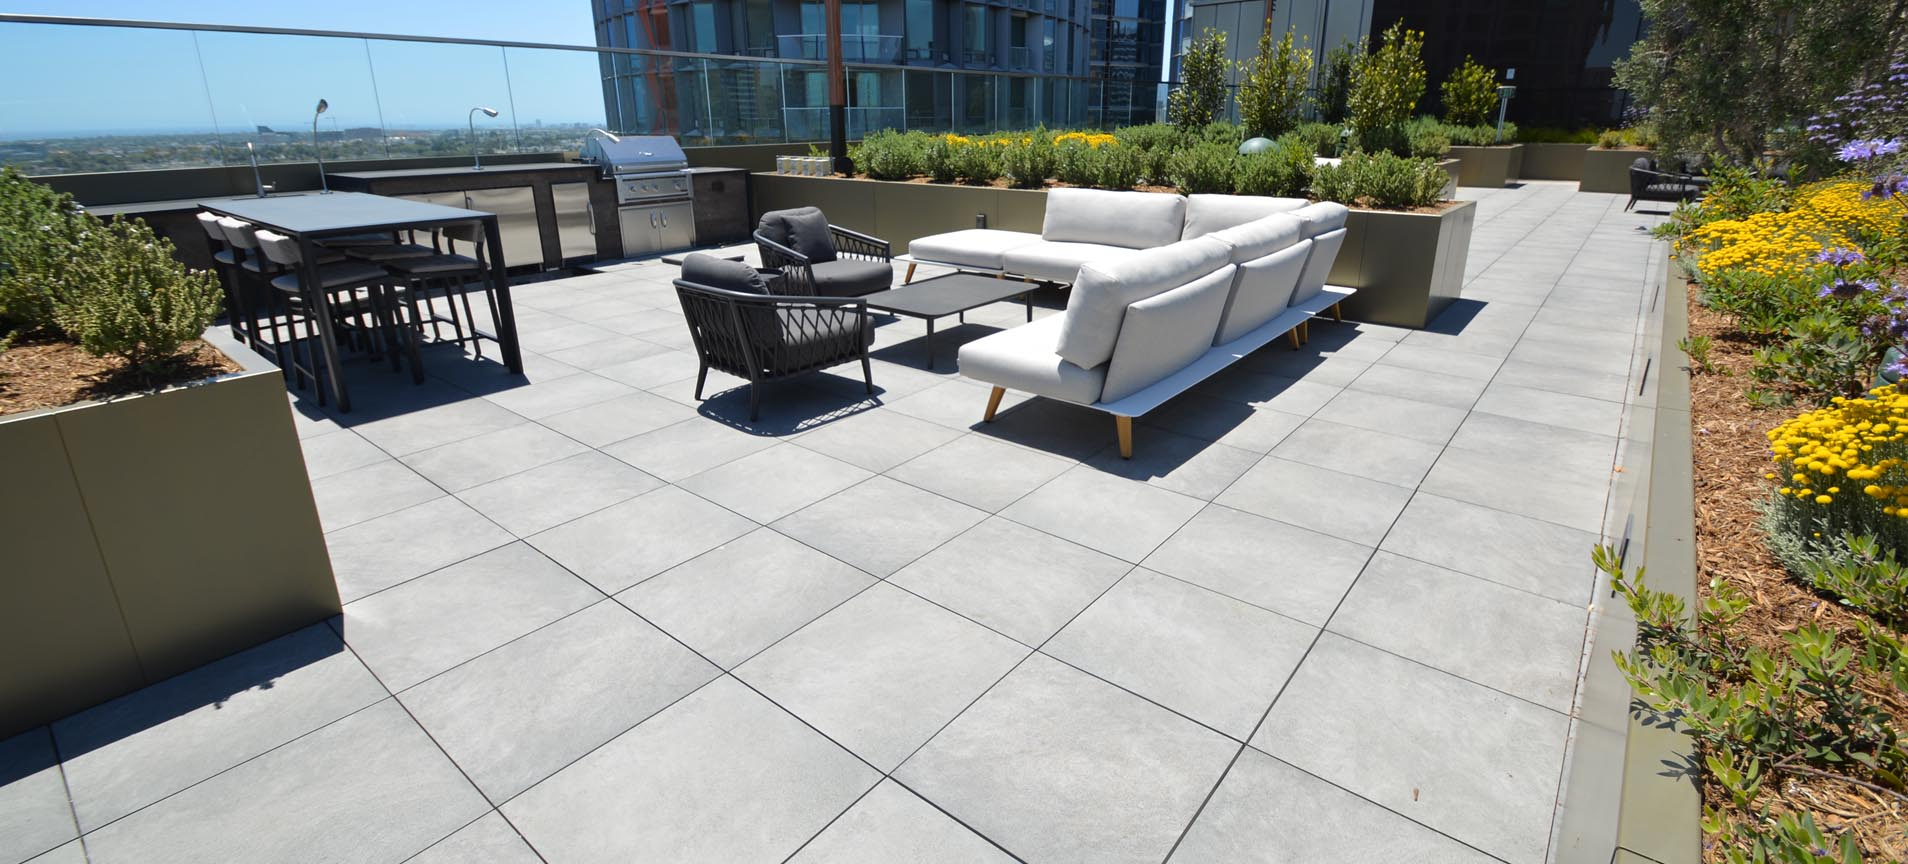 What to Know Before Starting a Hardscape Project